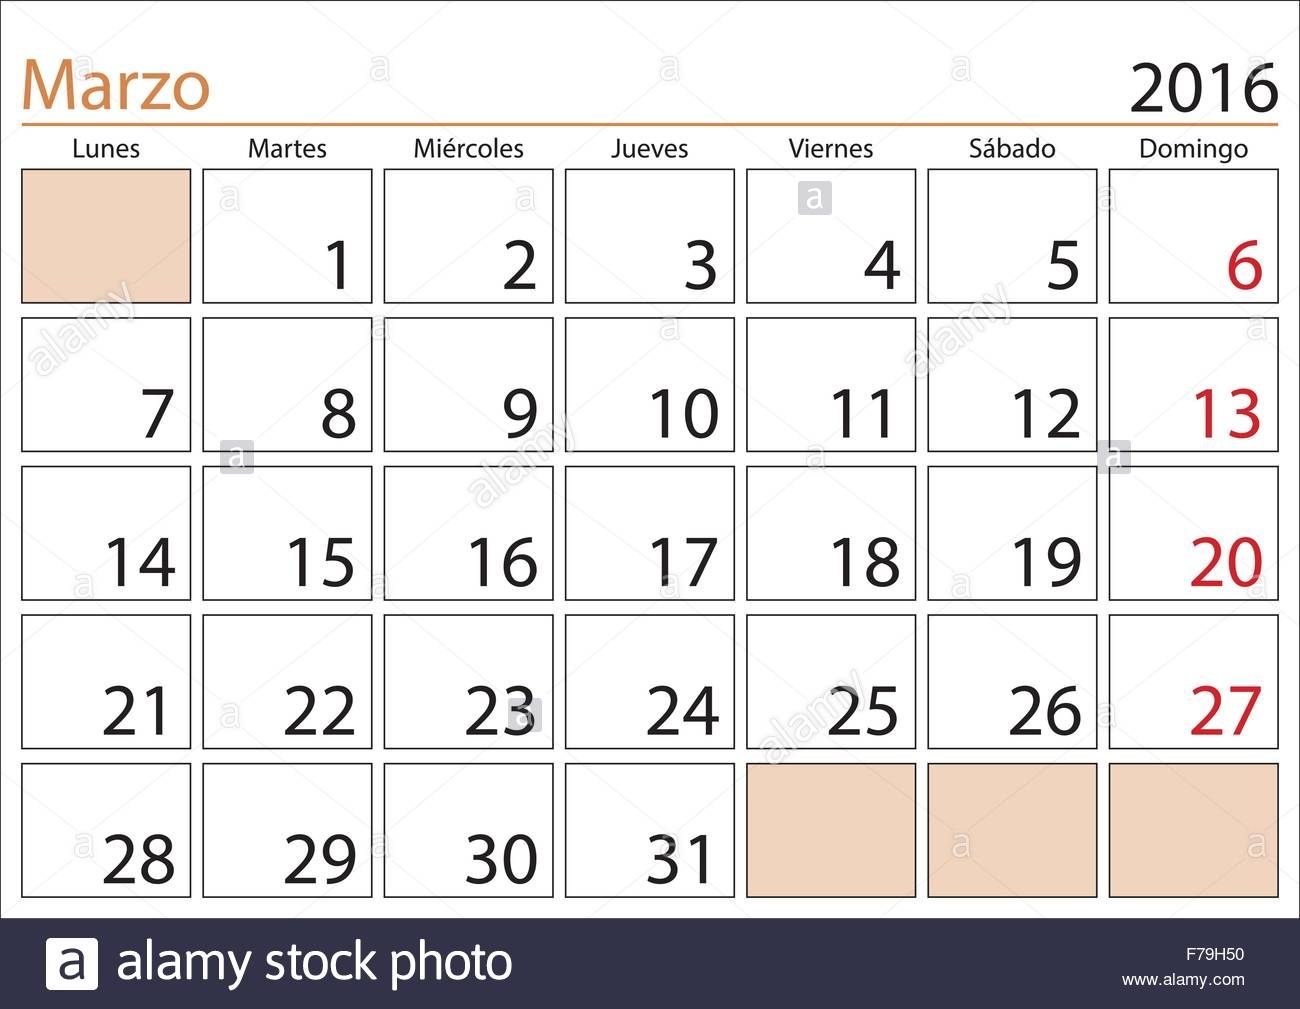 March Month In A Year 2016 Calendar In Spanish Marzo